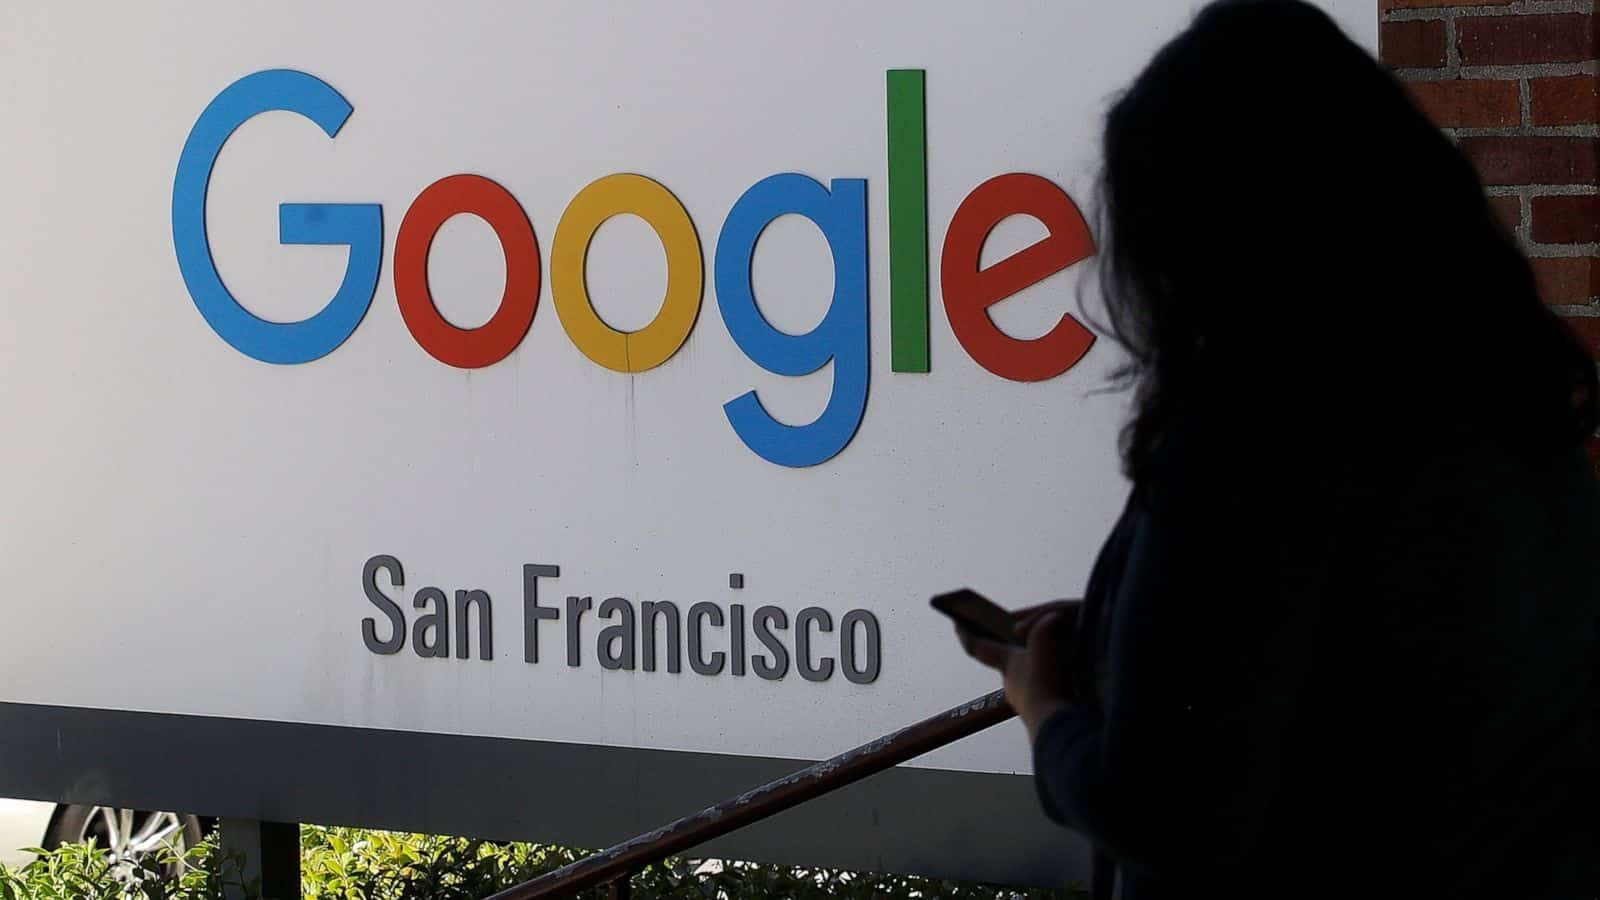 Google Invests San Francisco